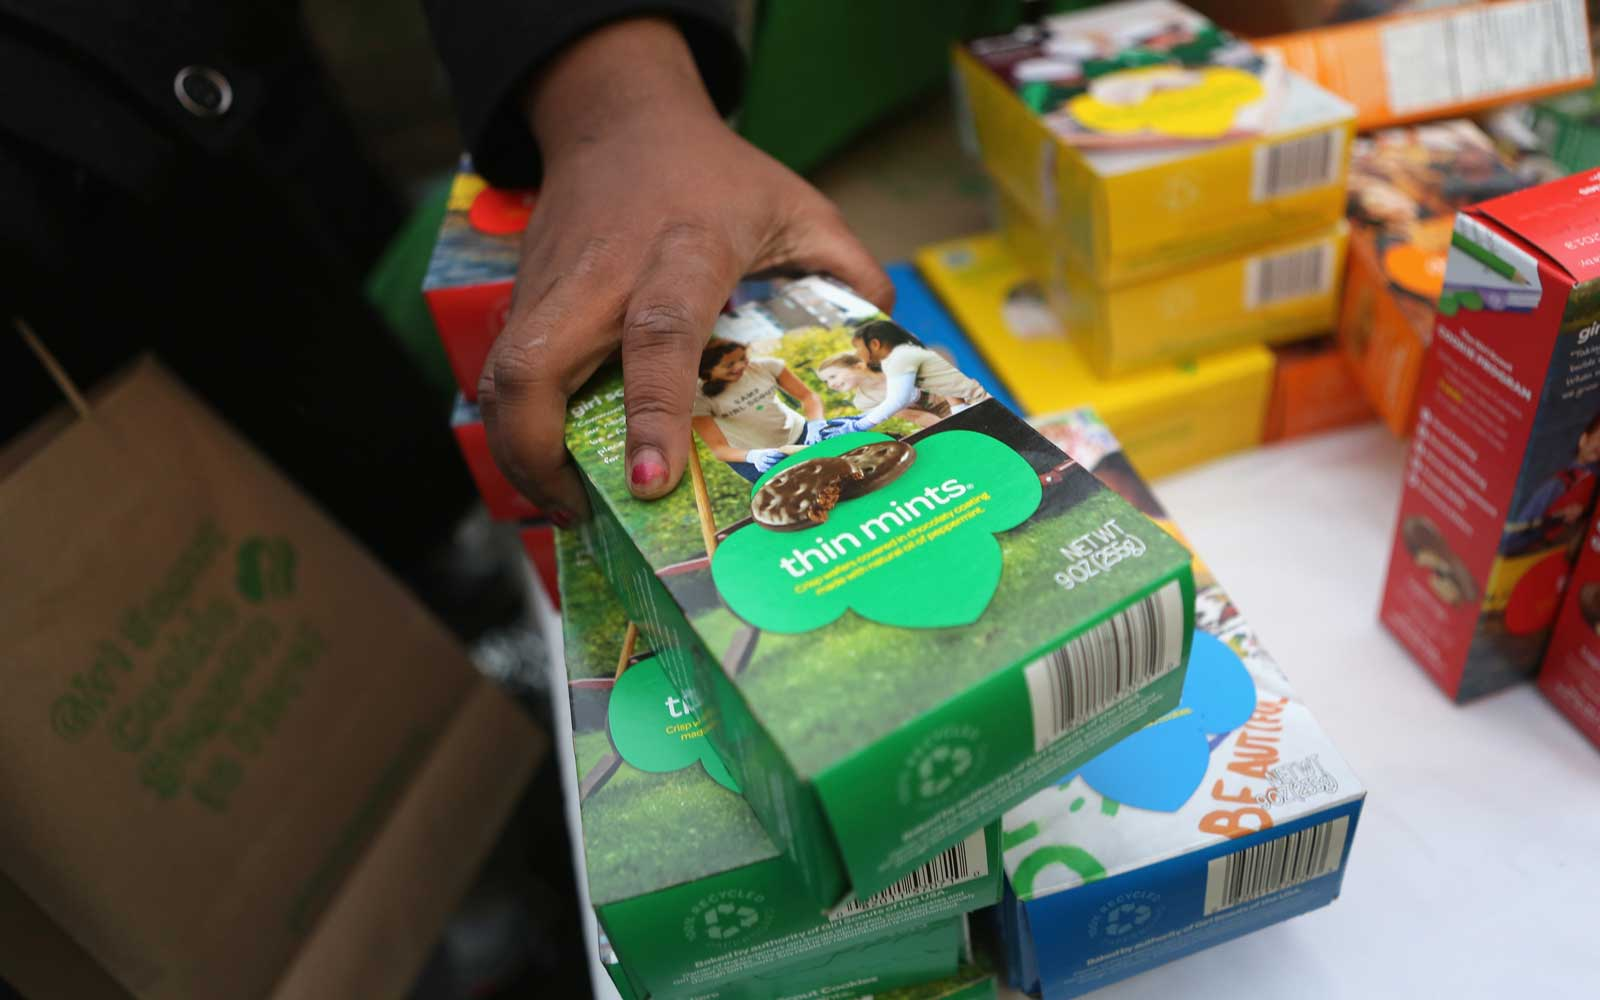 There's a brand new girl scout cookie flavor — and it's gluten-free